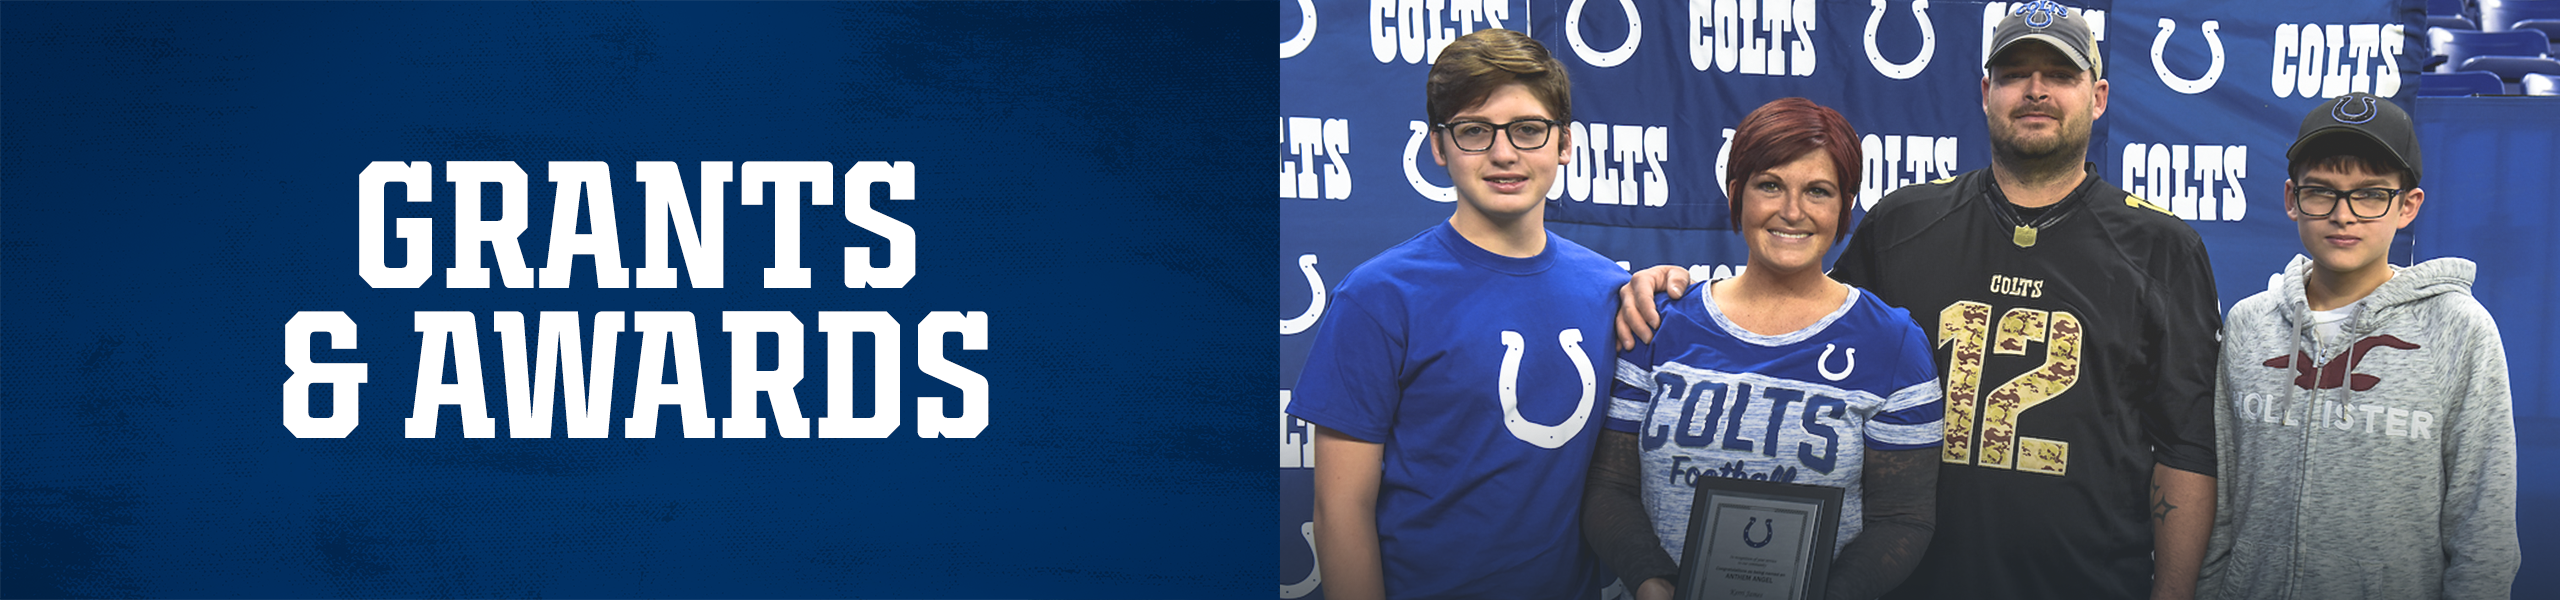 Indianapolis Colts Community Grants And Awards